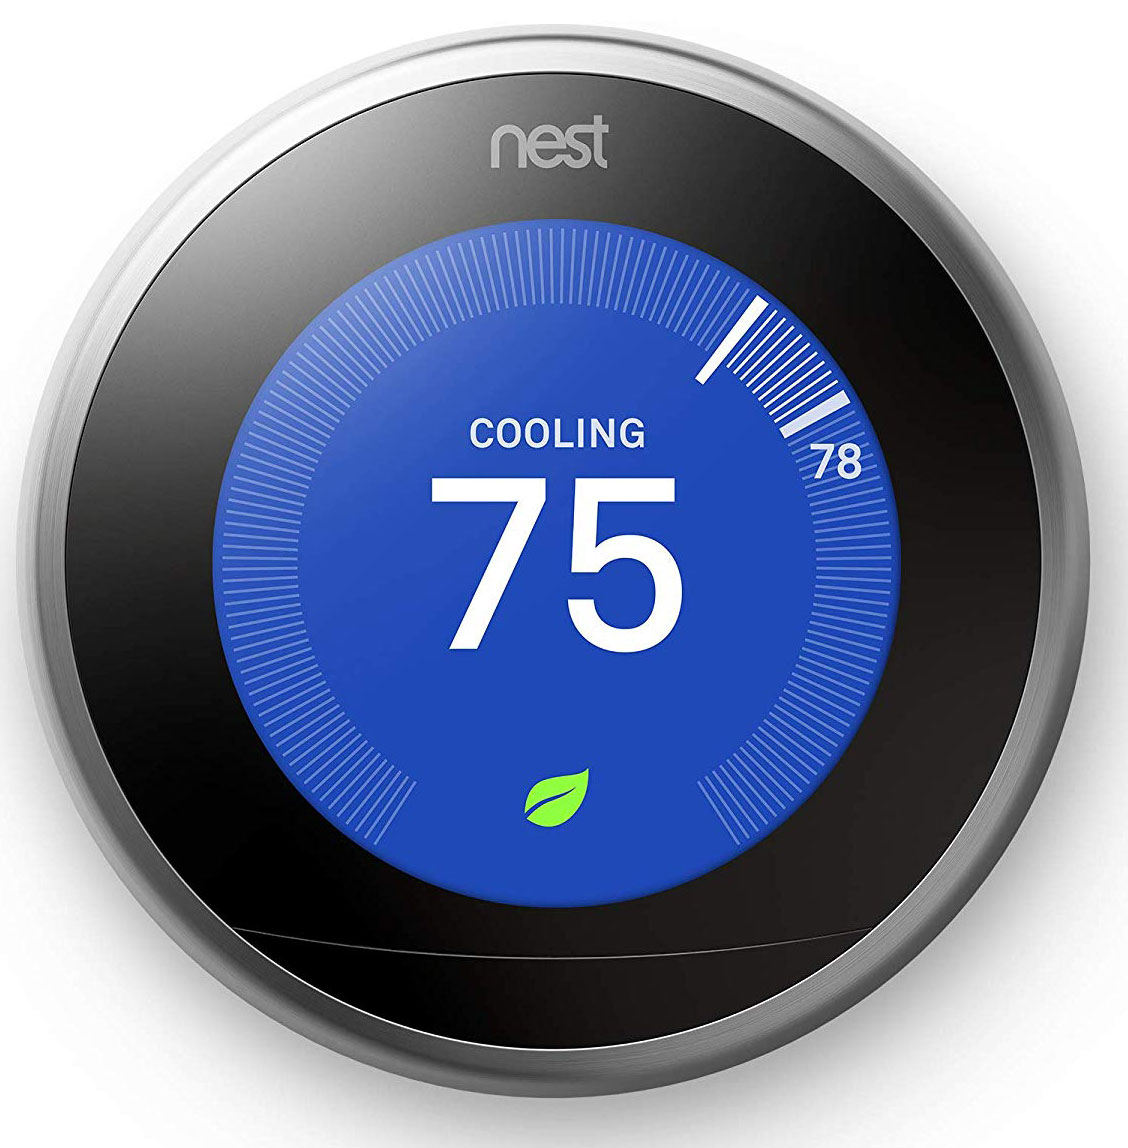 Voice assistant smart home devices and accessories - A learning thermostat